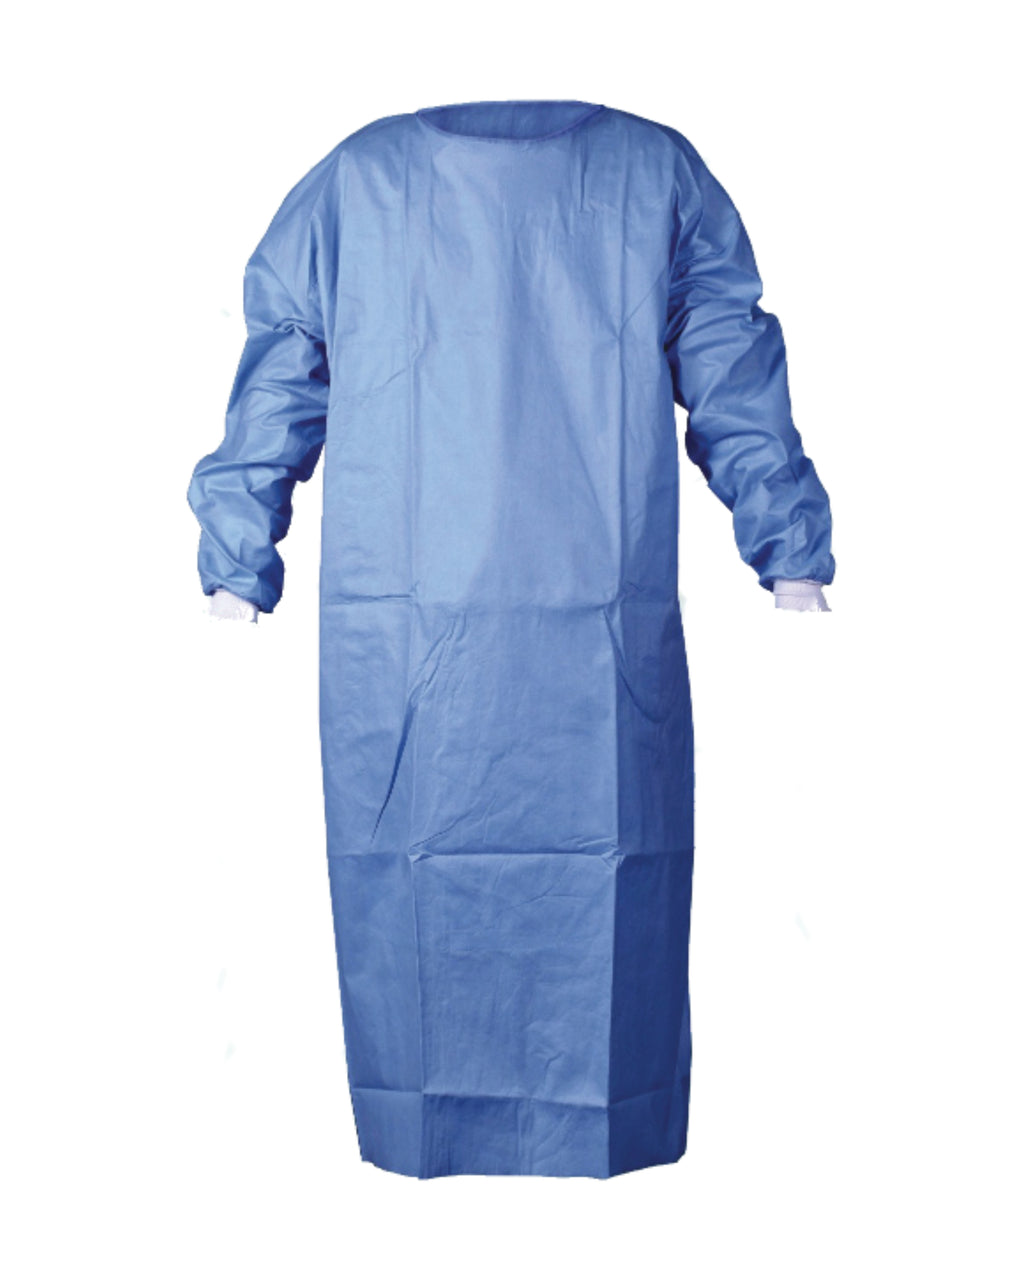 ColdAvenger Surgical Gown